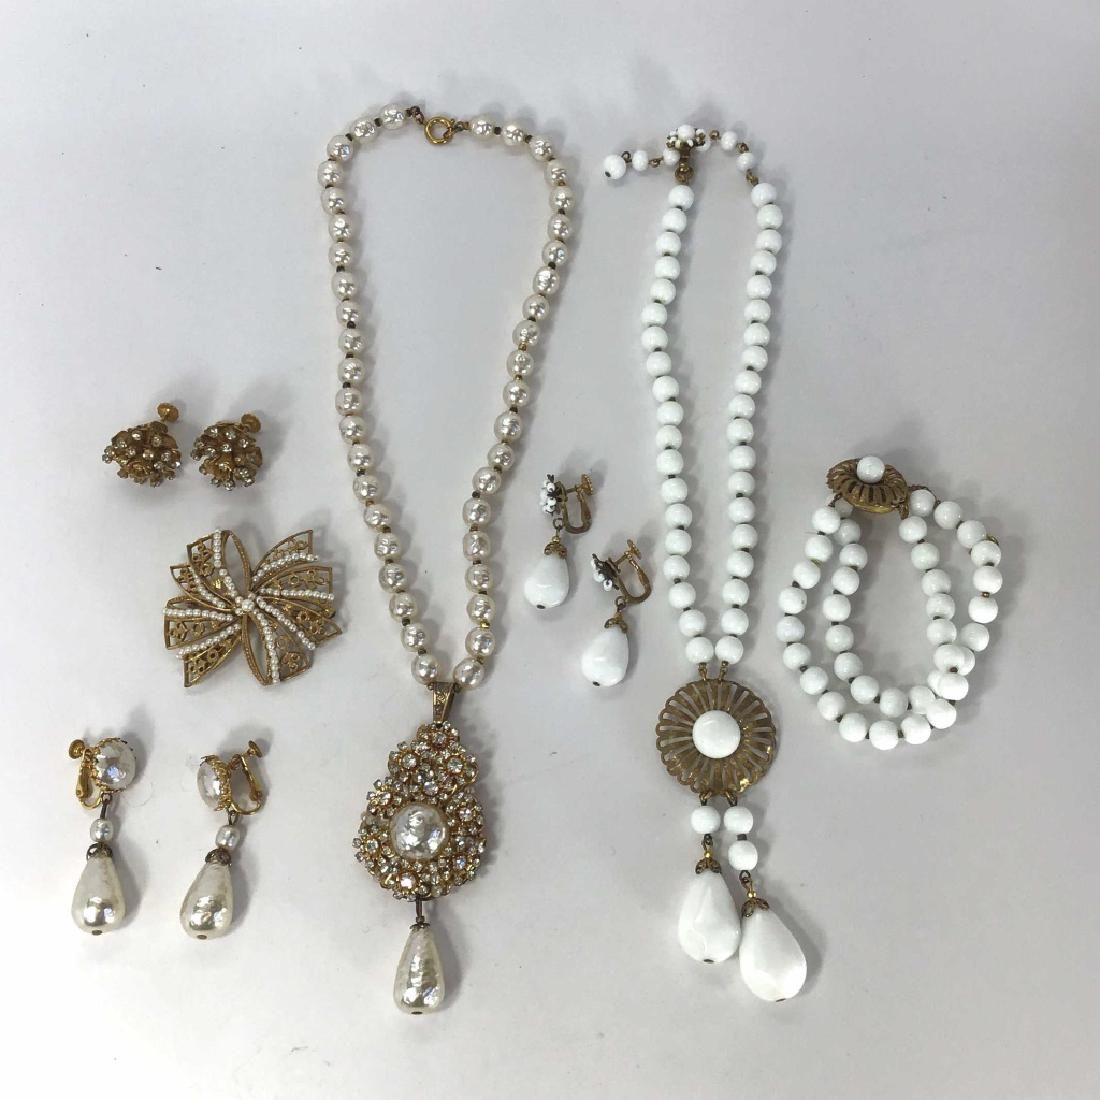 Vintage Miriam Haskell, Necklaces, Earrings...